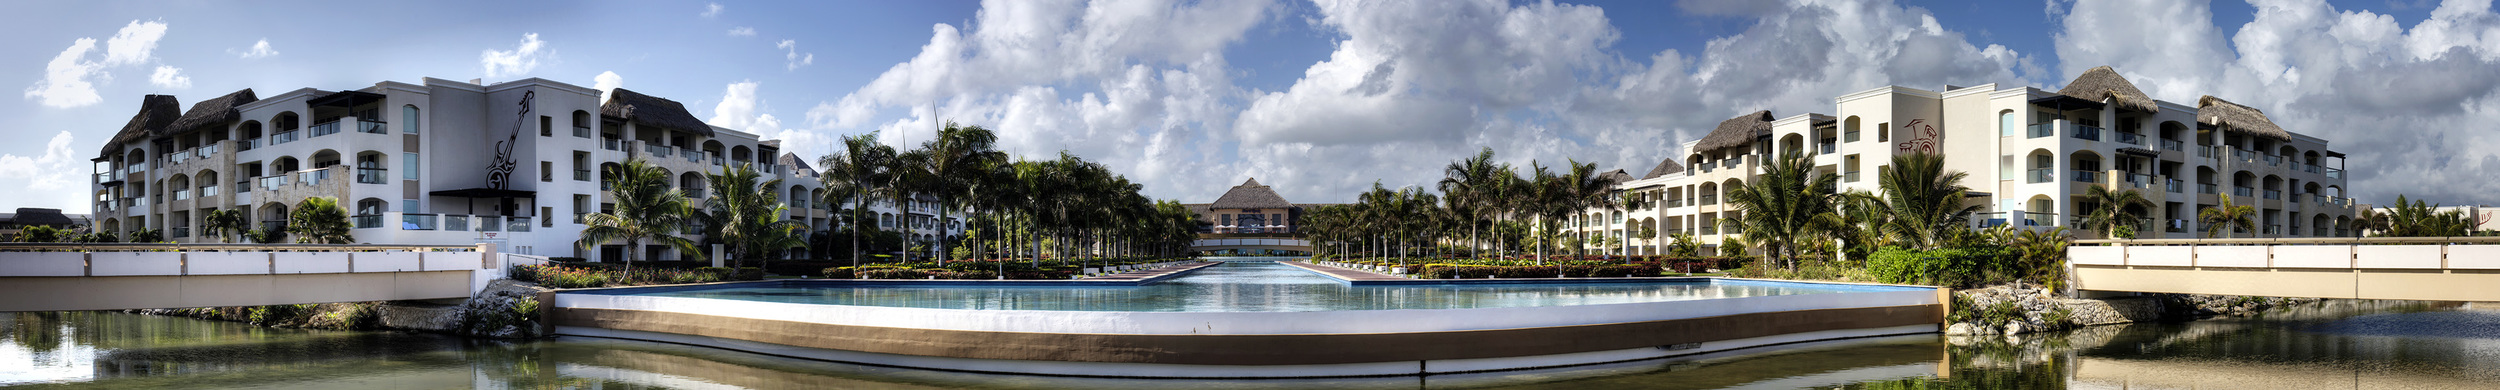 Hard Rock Resort Buildings and Grounds - Punta Cana, DR